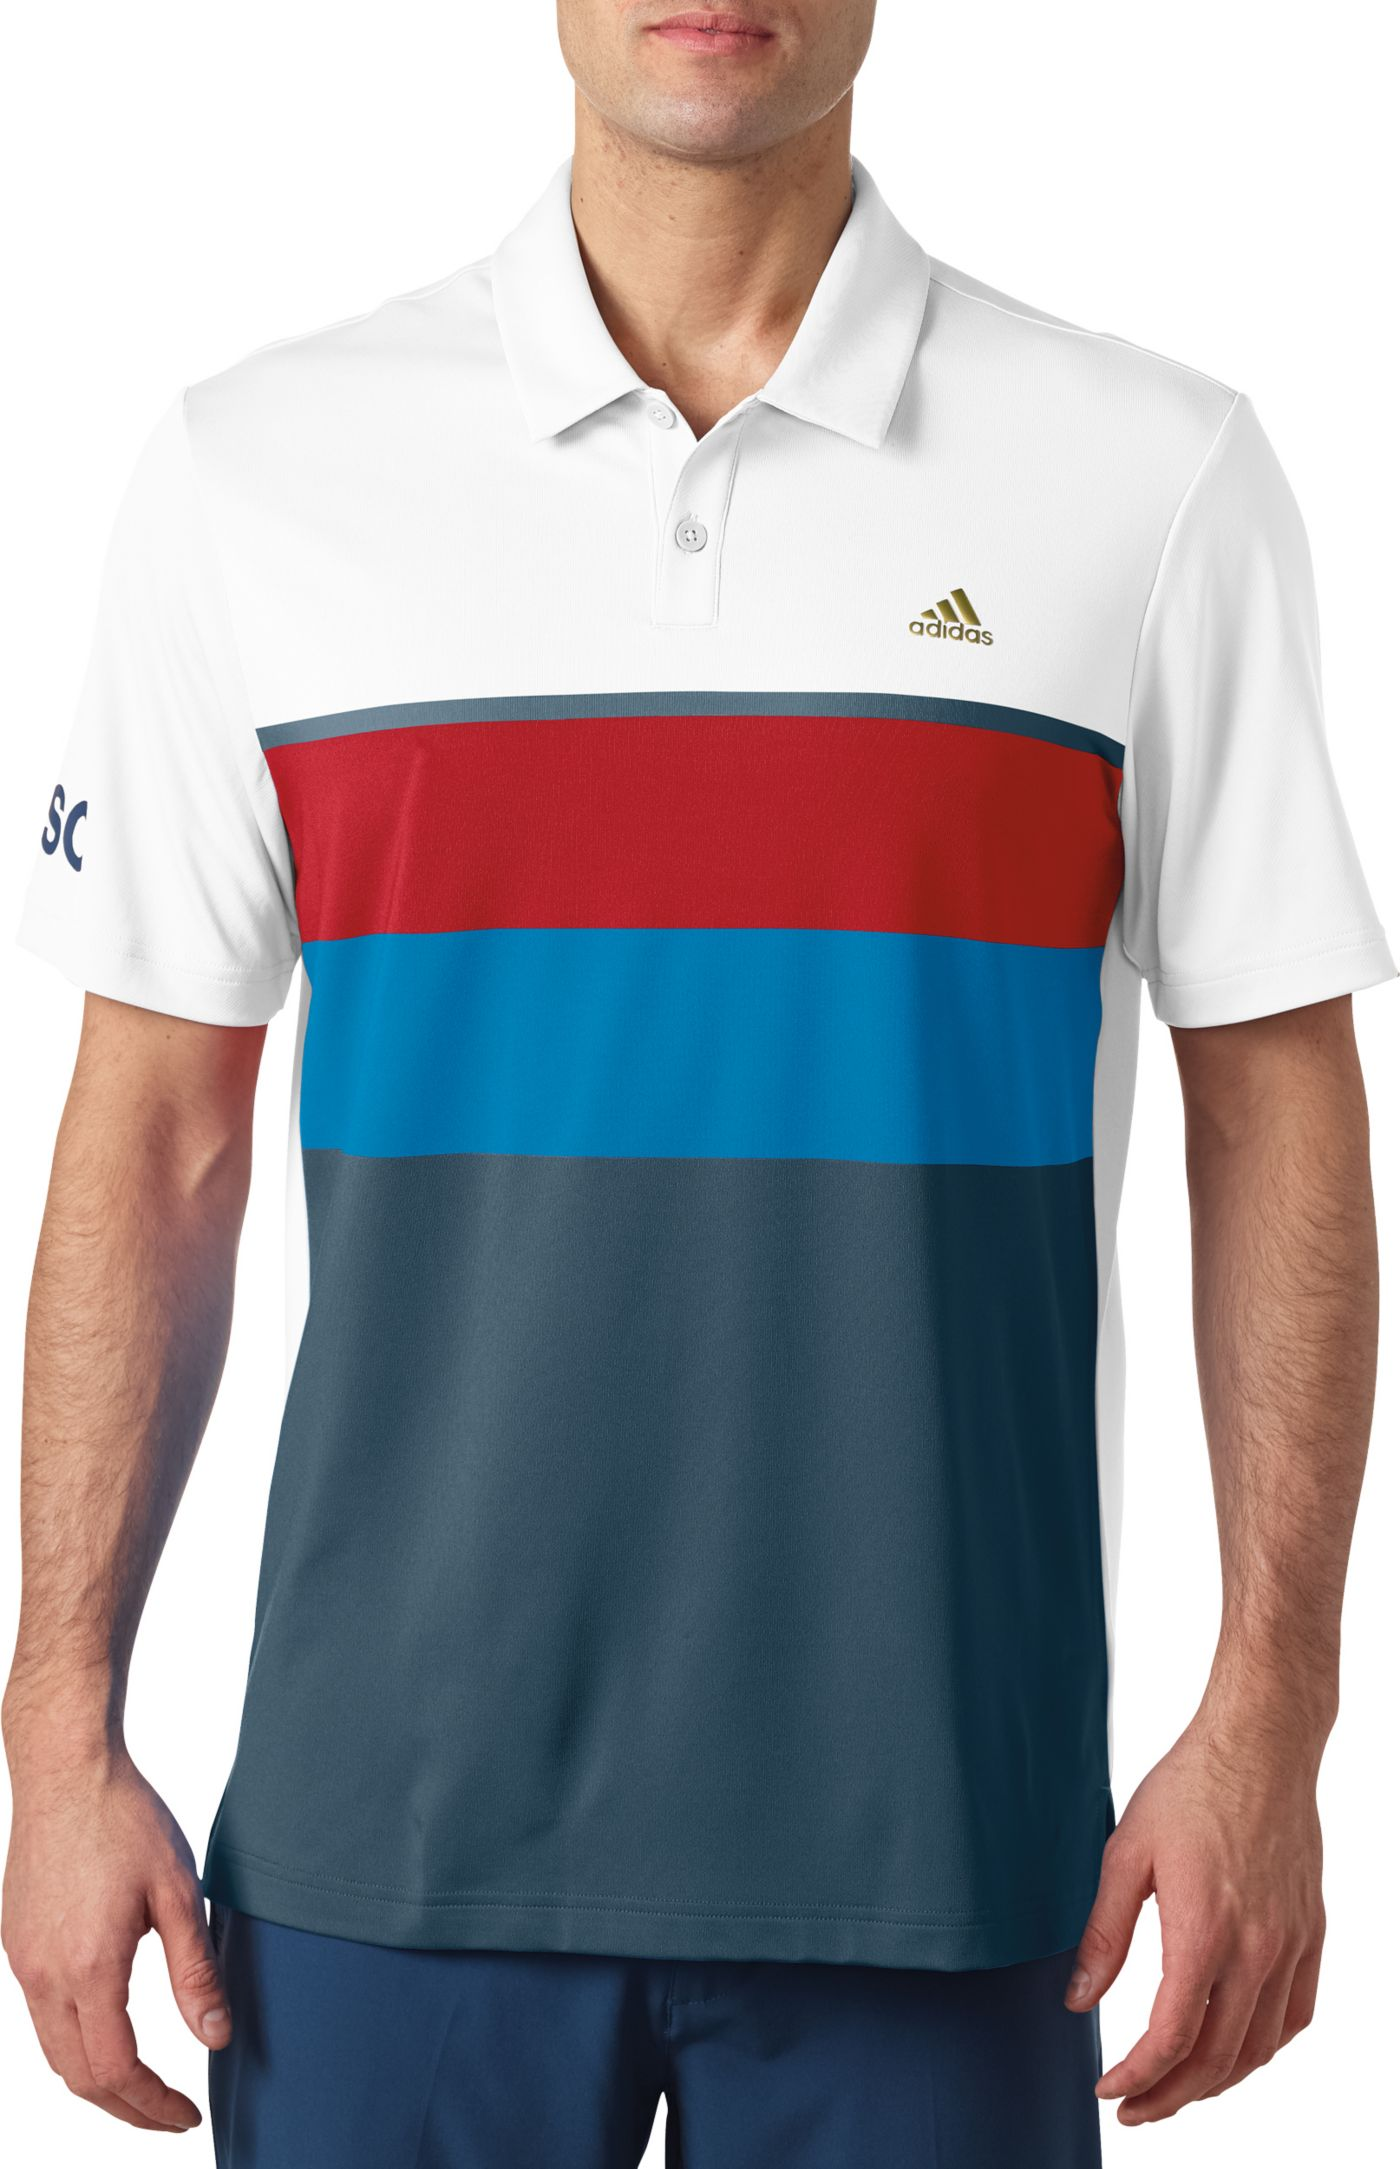 adidas Men's USA Engineered Stripe Golf Polo